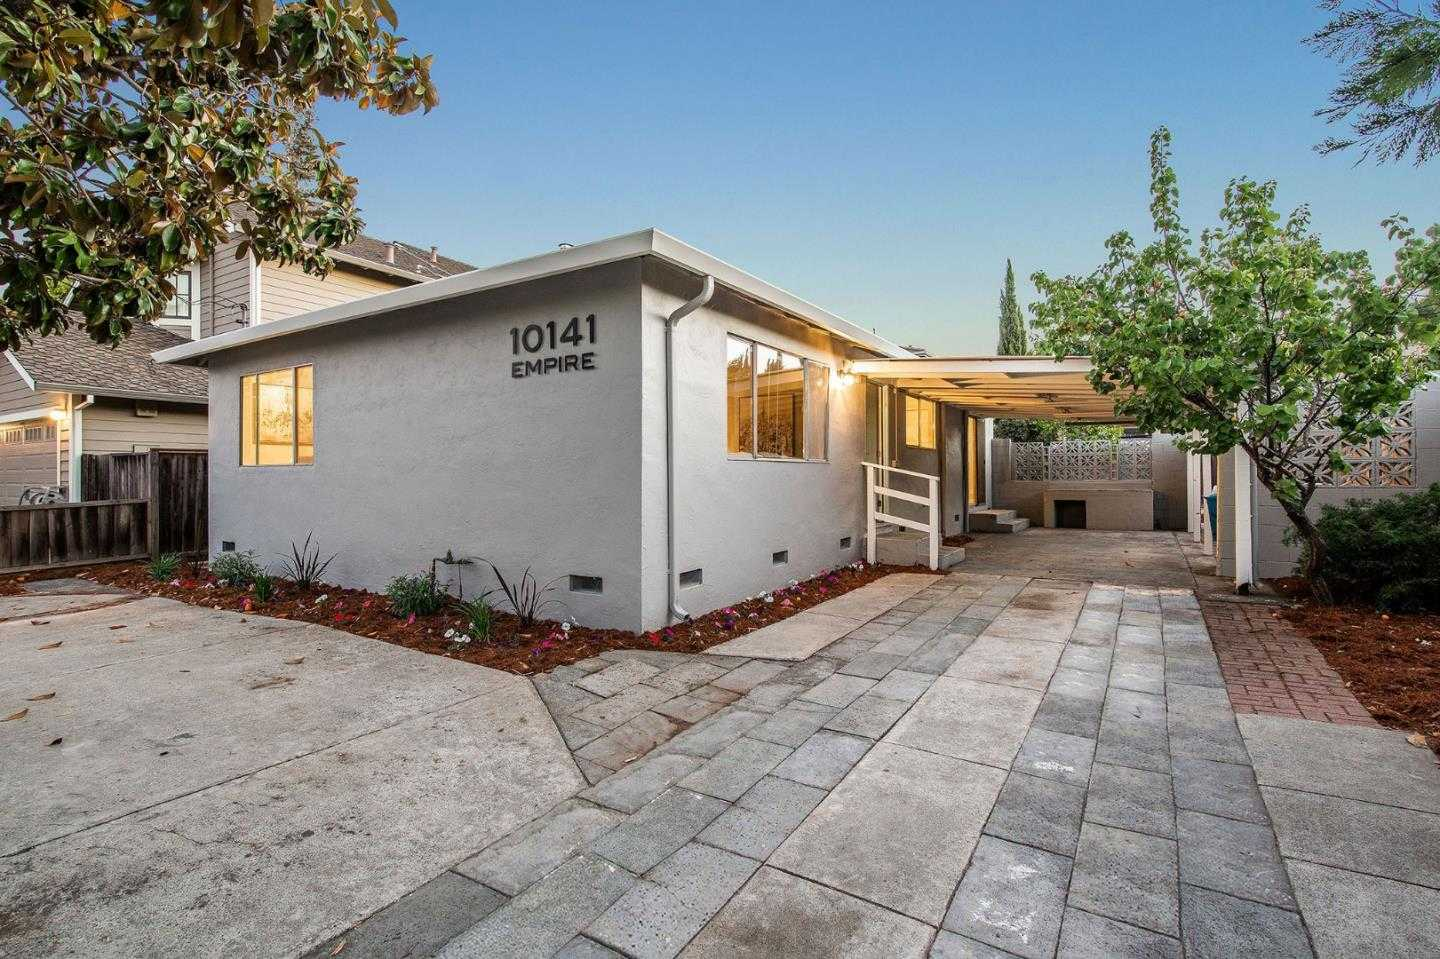 $1,688,000 - 3Br/1Ba -  for Sale in Cupertino